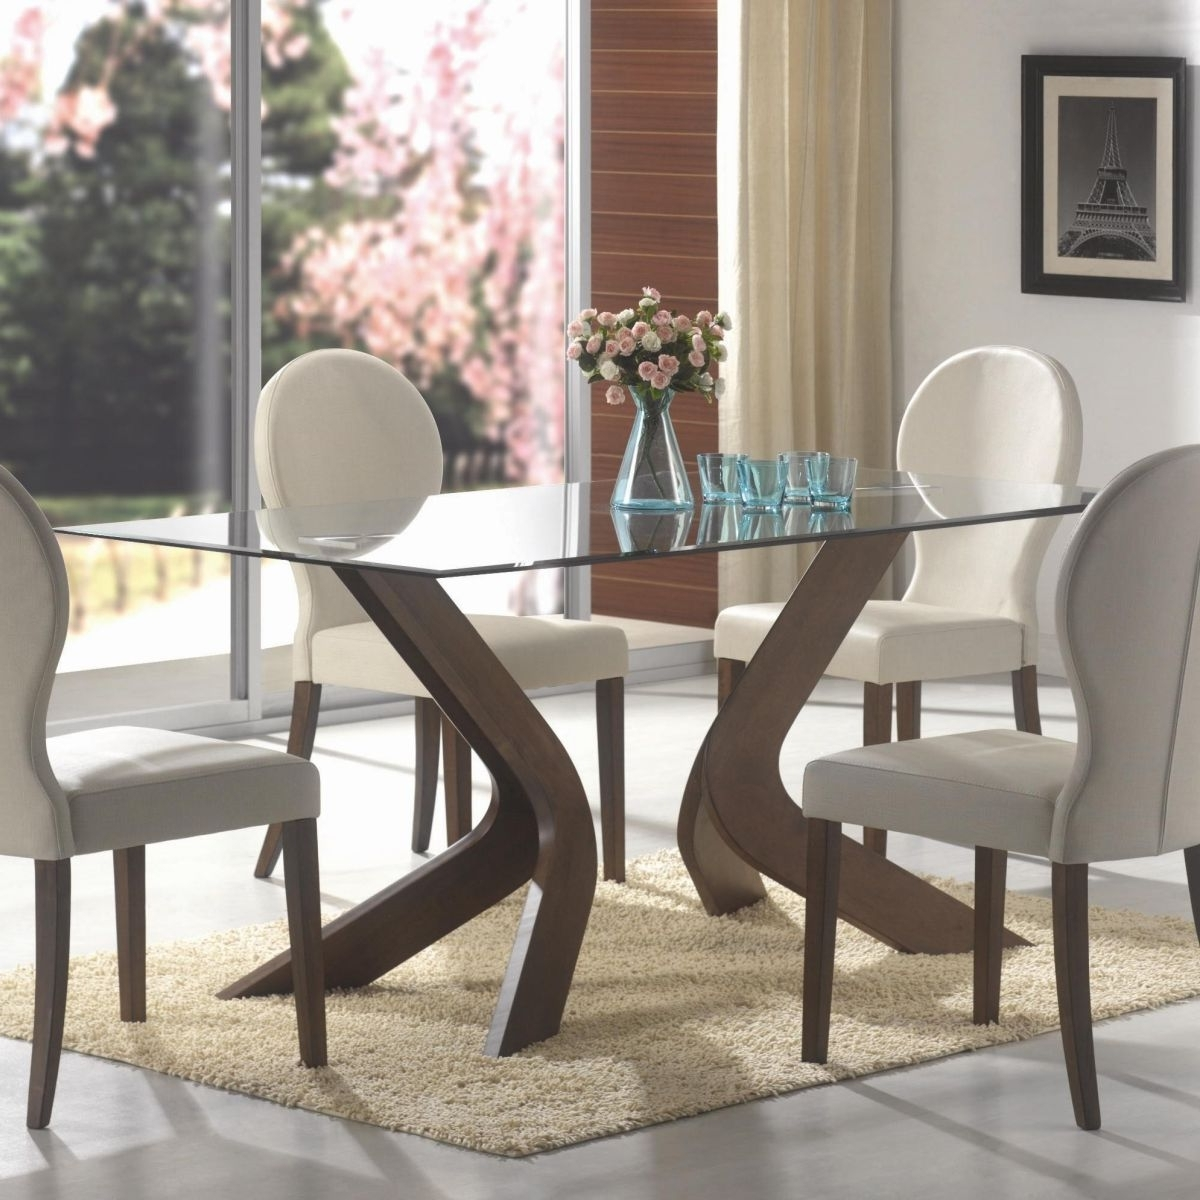 Glass And Oak Dining Tables And Chairs Pertaining To Widely Used Dining Room Contemporary Glass Top Dining Table Oak Dining Room (View 9 of 25)